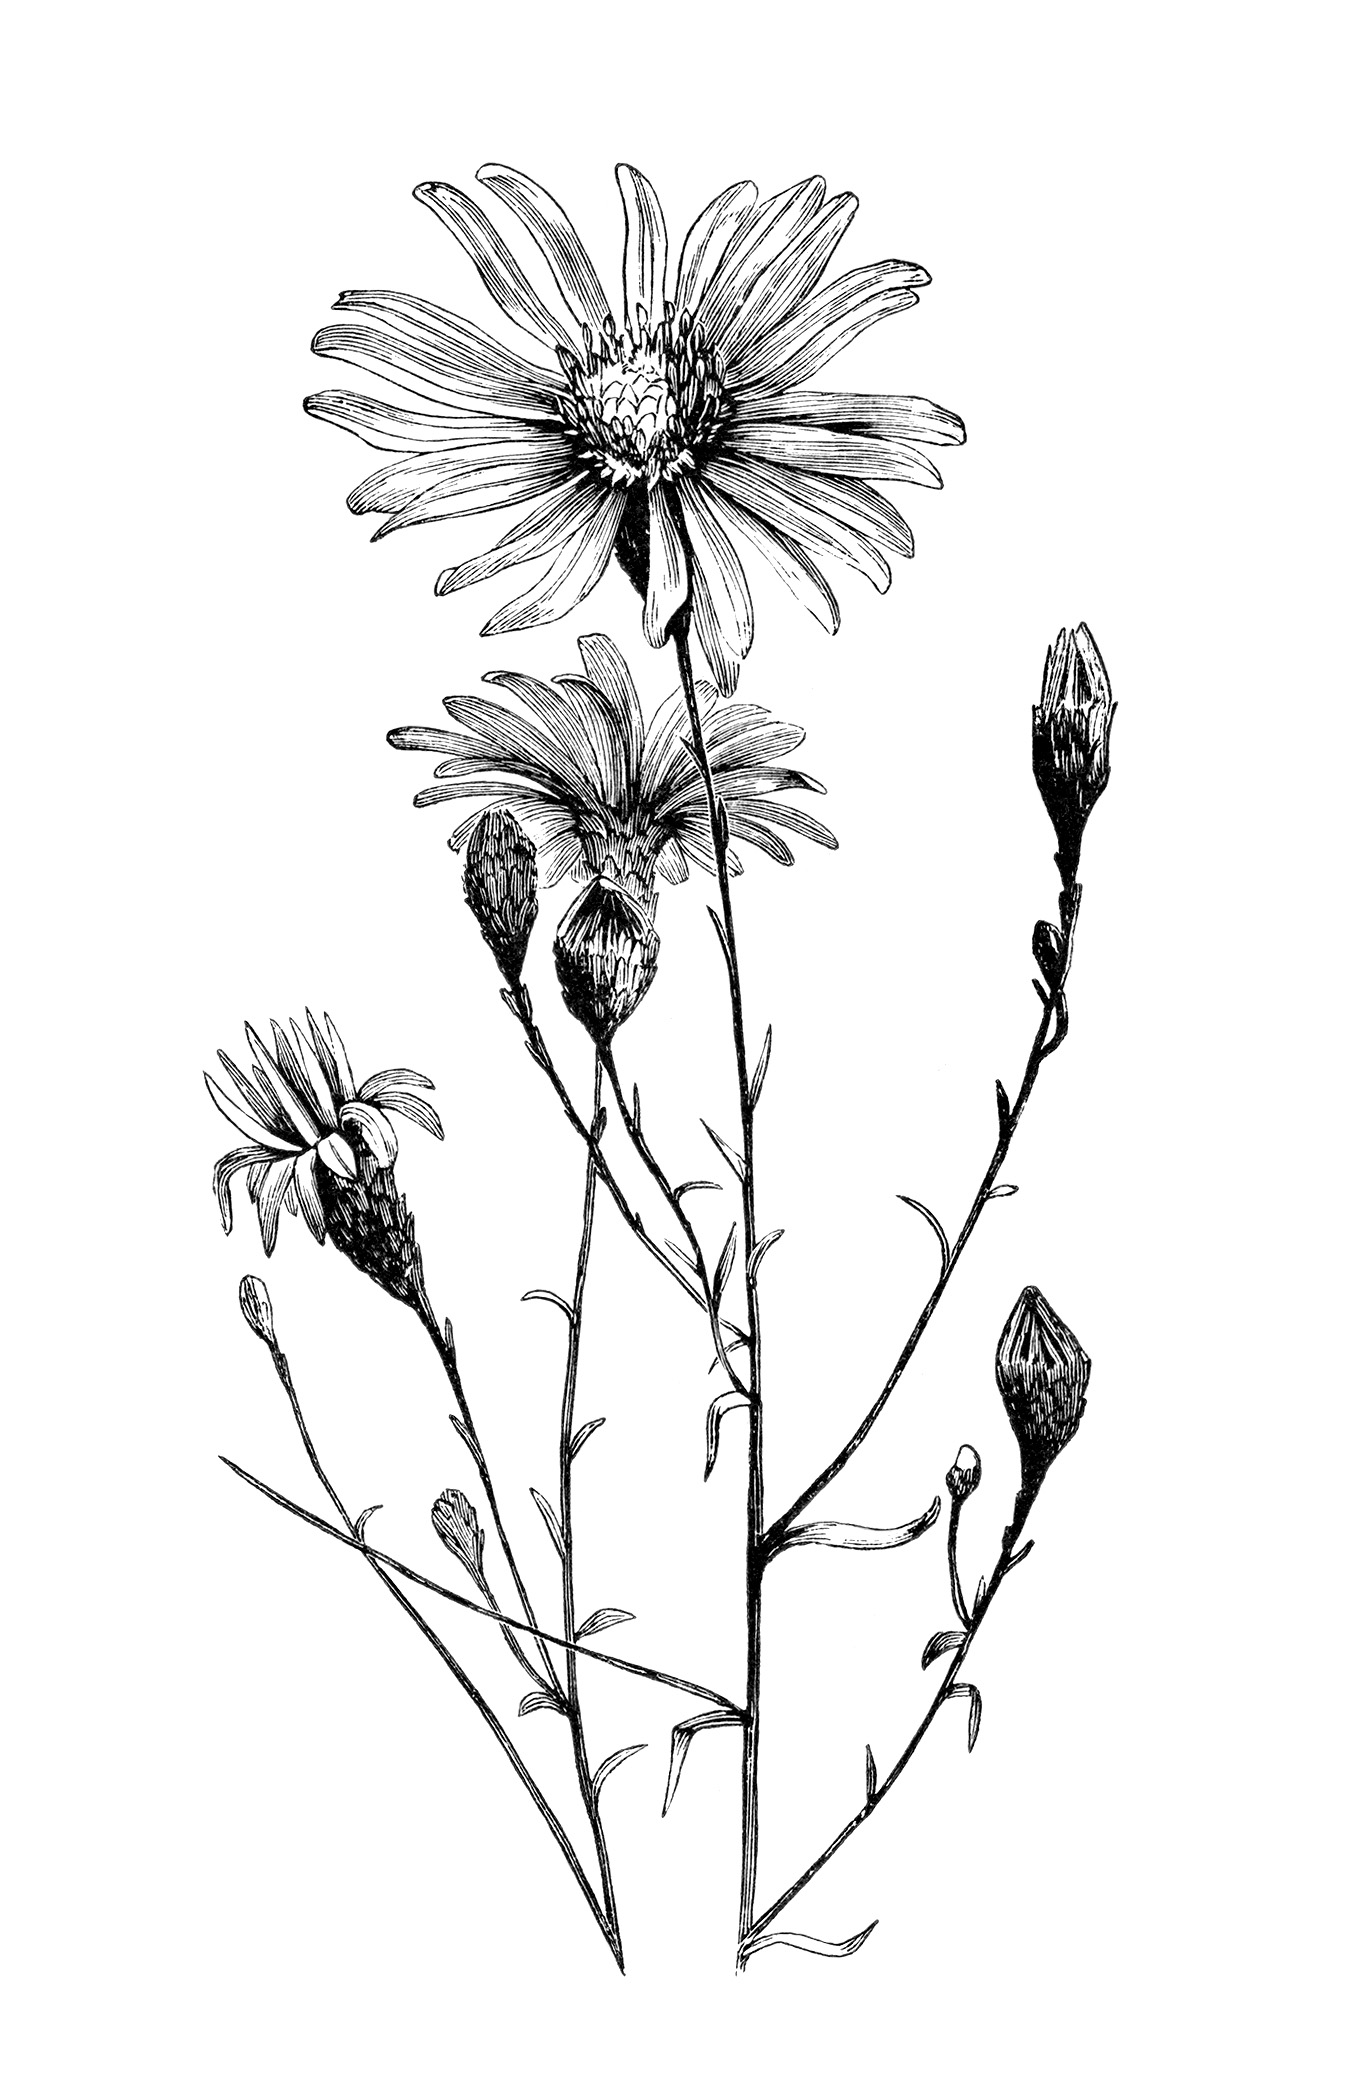 Drawn vintage flower White aster flower flower art